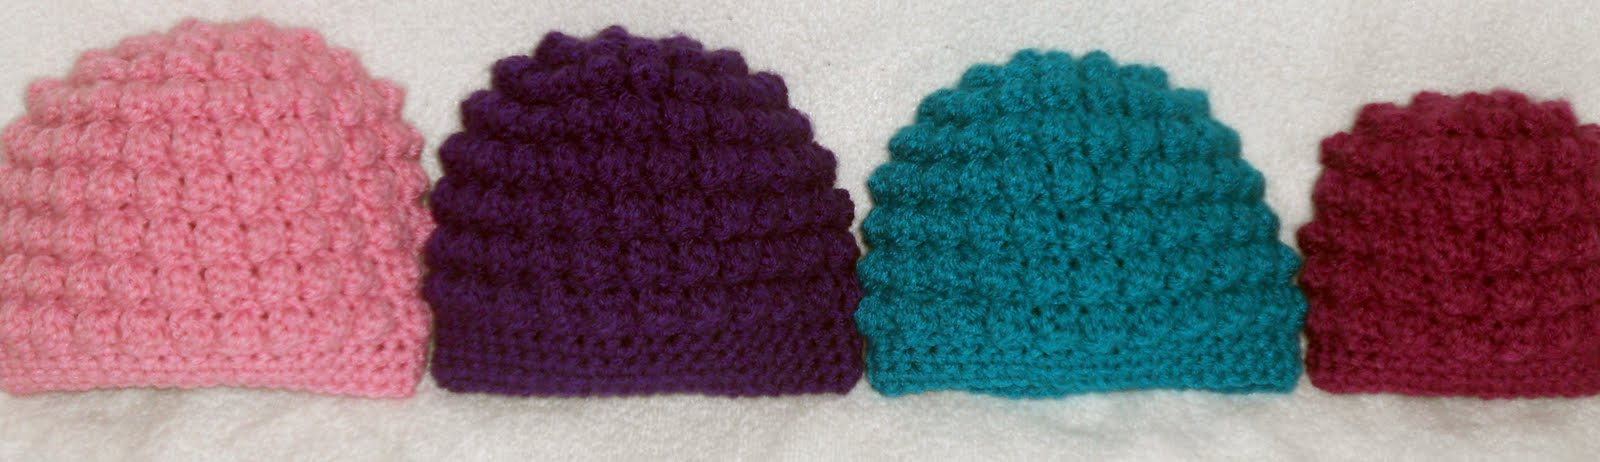 Crafty Woman Creations  Free Baby Bumpy Bobbles Beanie Crochet Pattern! 58011a32e0e